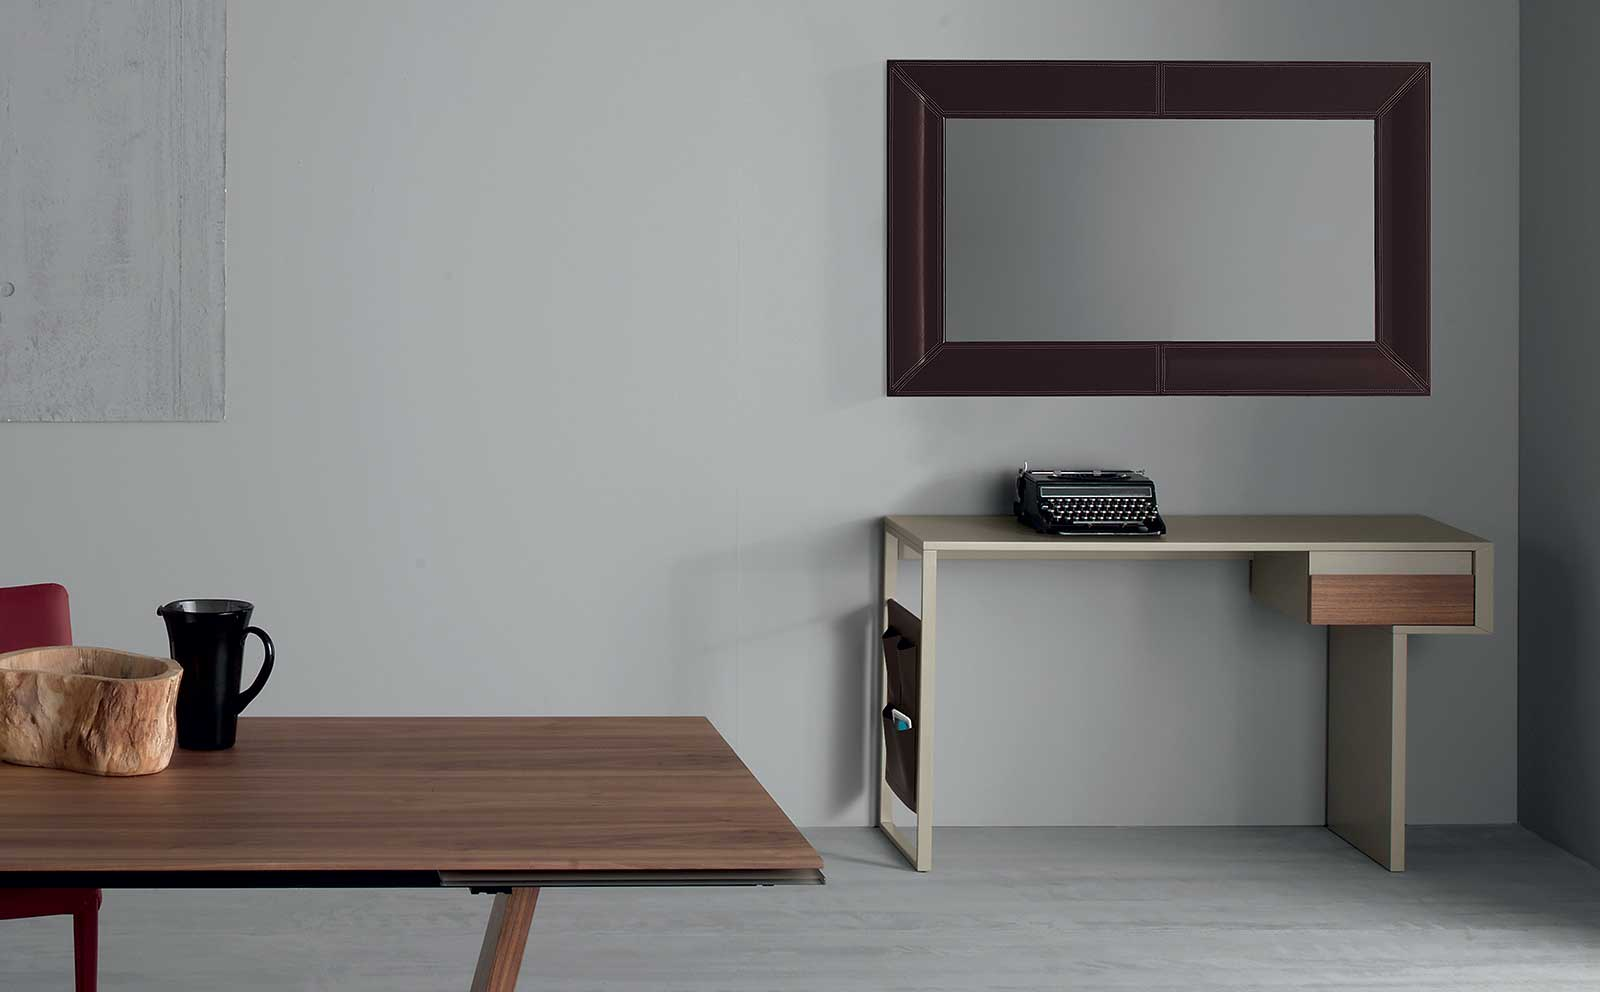 arredare con mobili antichi e moderni. Black Bedroom Furniture Sets. Home Design Ideas